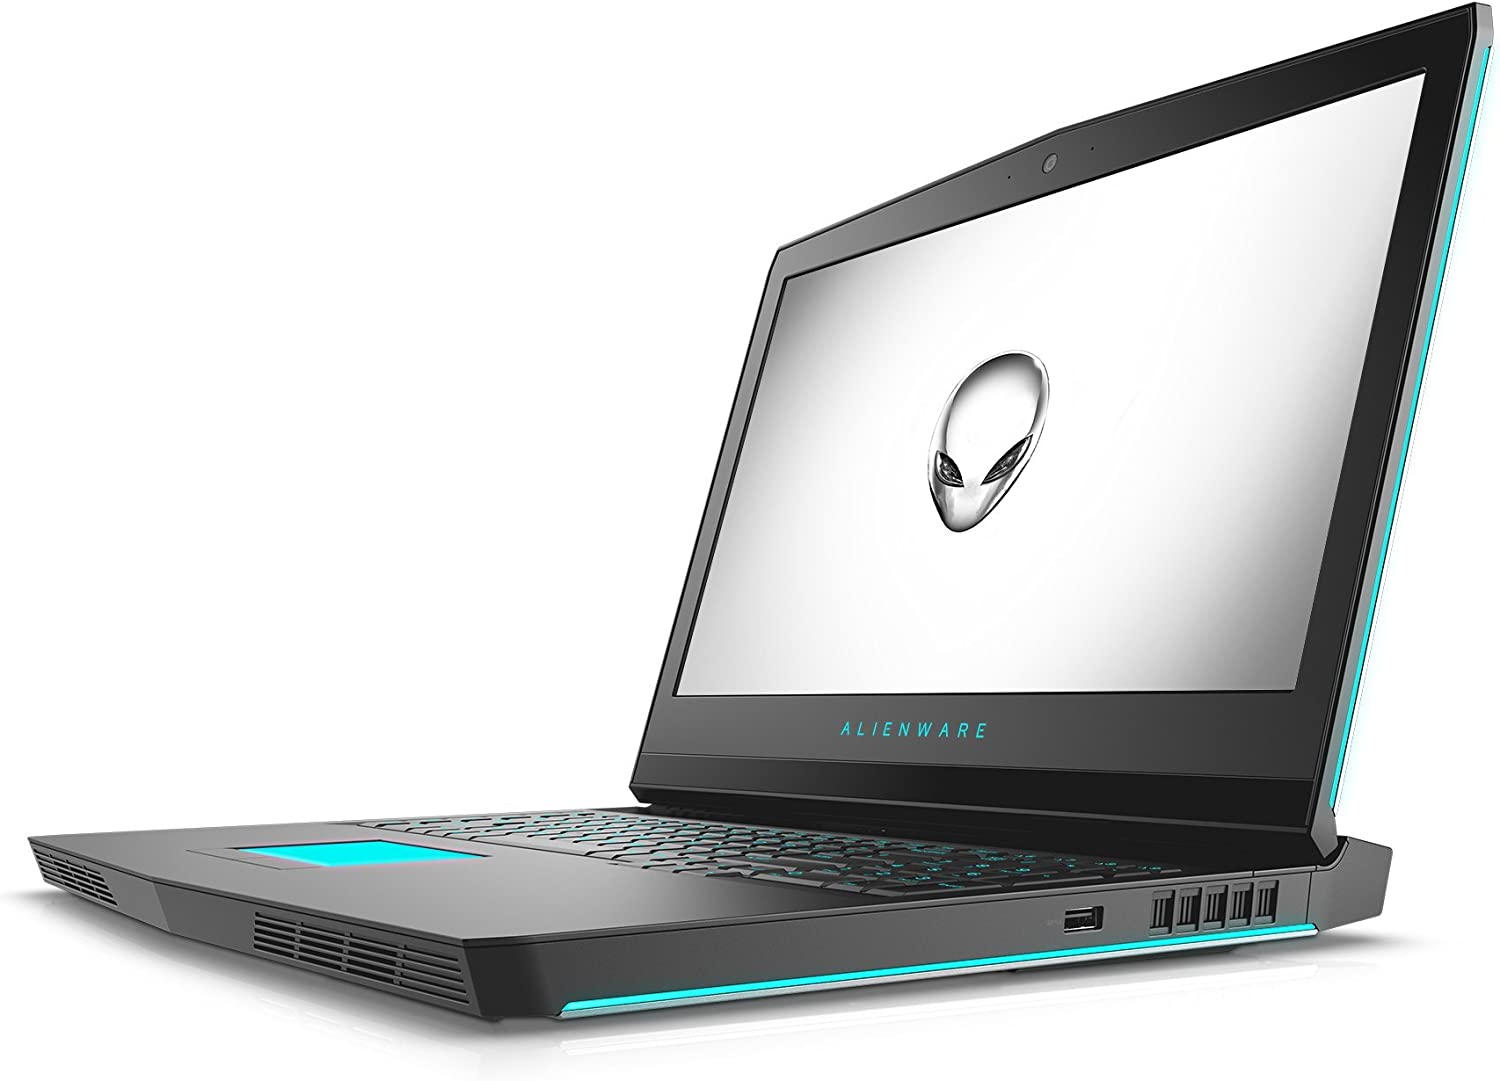 Alienware AW17R4-7345SLV-PUS 17in Laptop (7th Generation Intel Core i7, 16GB RAM, 1TB HDD, Silver) VR Ready with NVIDIA GTX 1070 (Renewed)